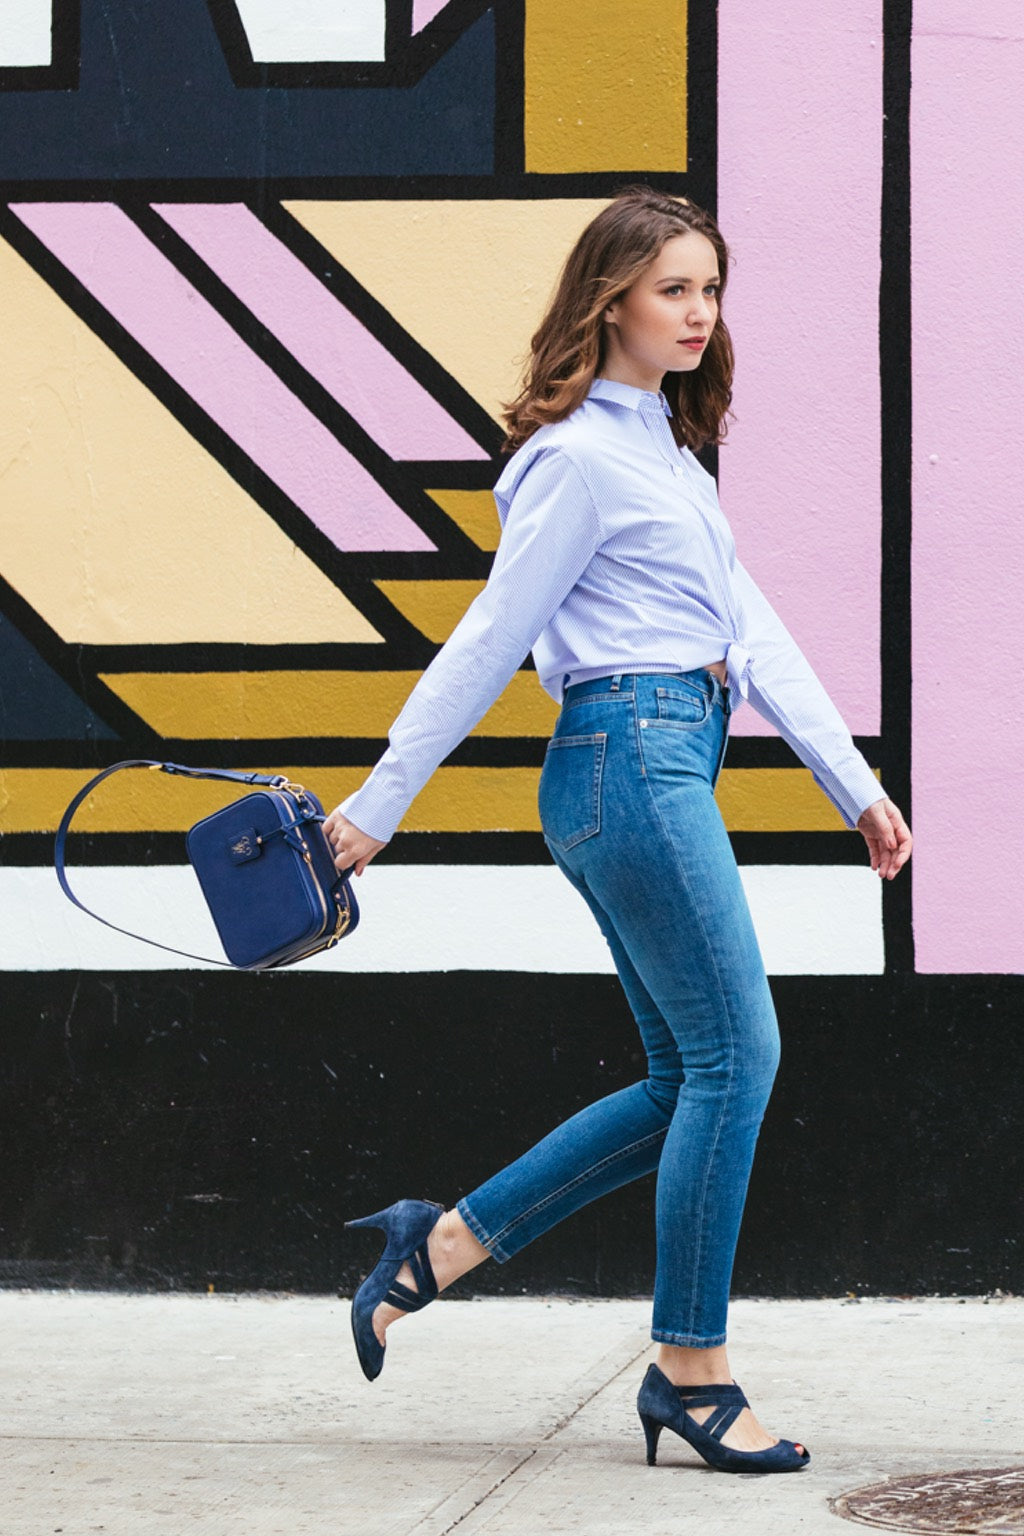 Model holding the crossbody bag by handle